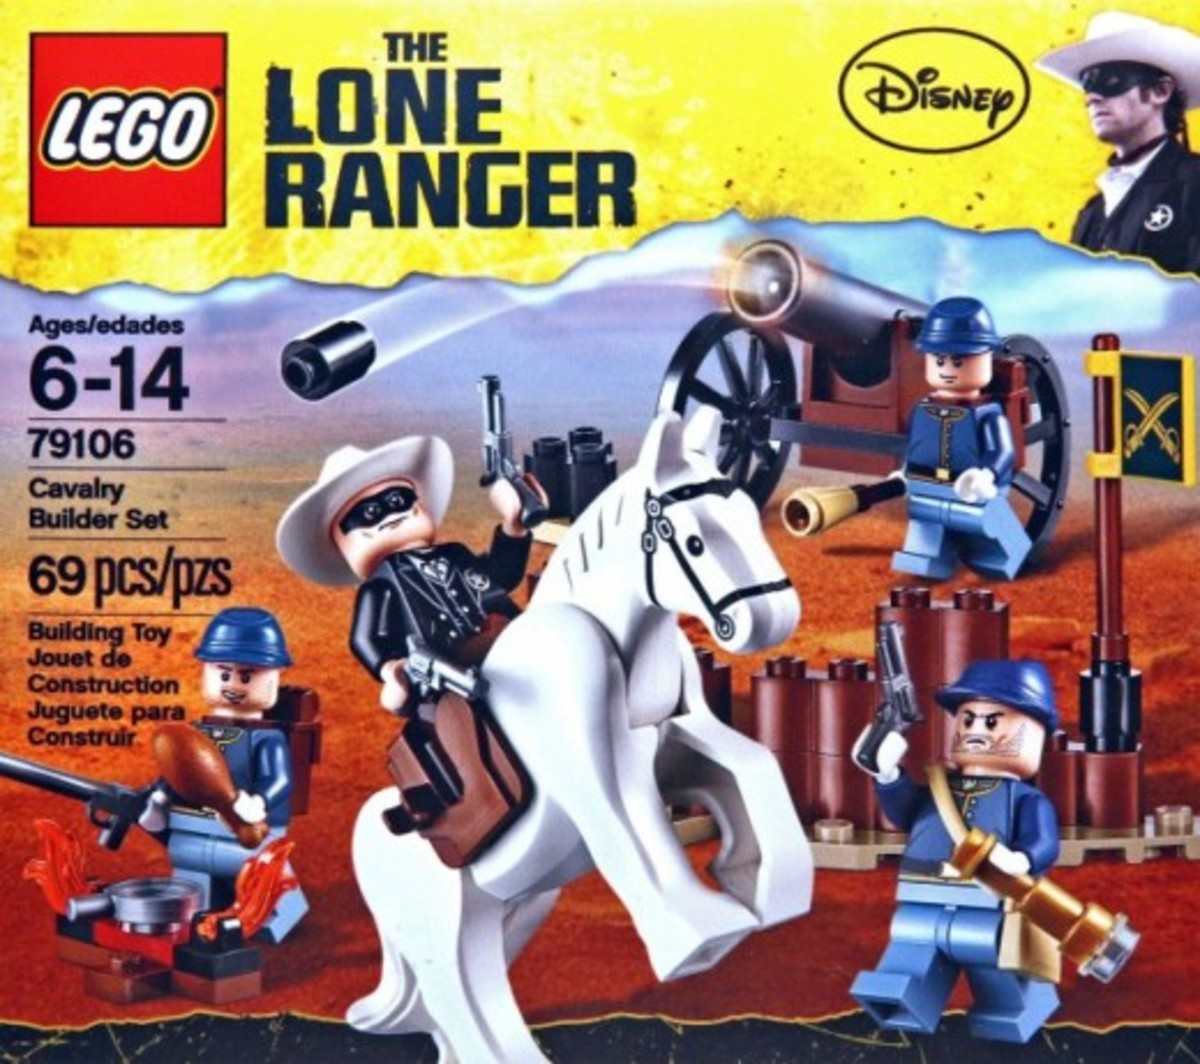 LEGO The Lone Ranger Cavalry Builder's Set 79106 Box